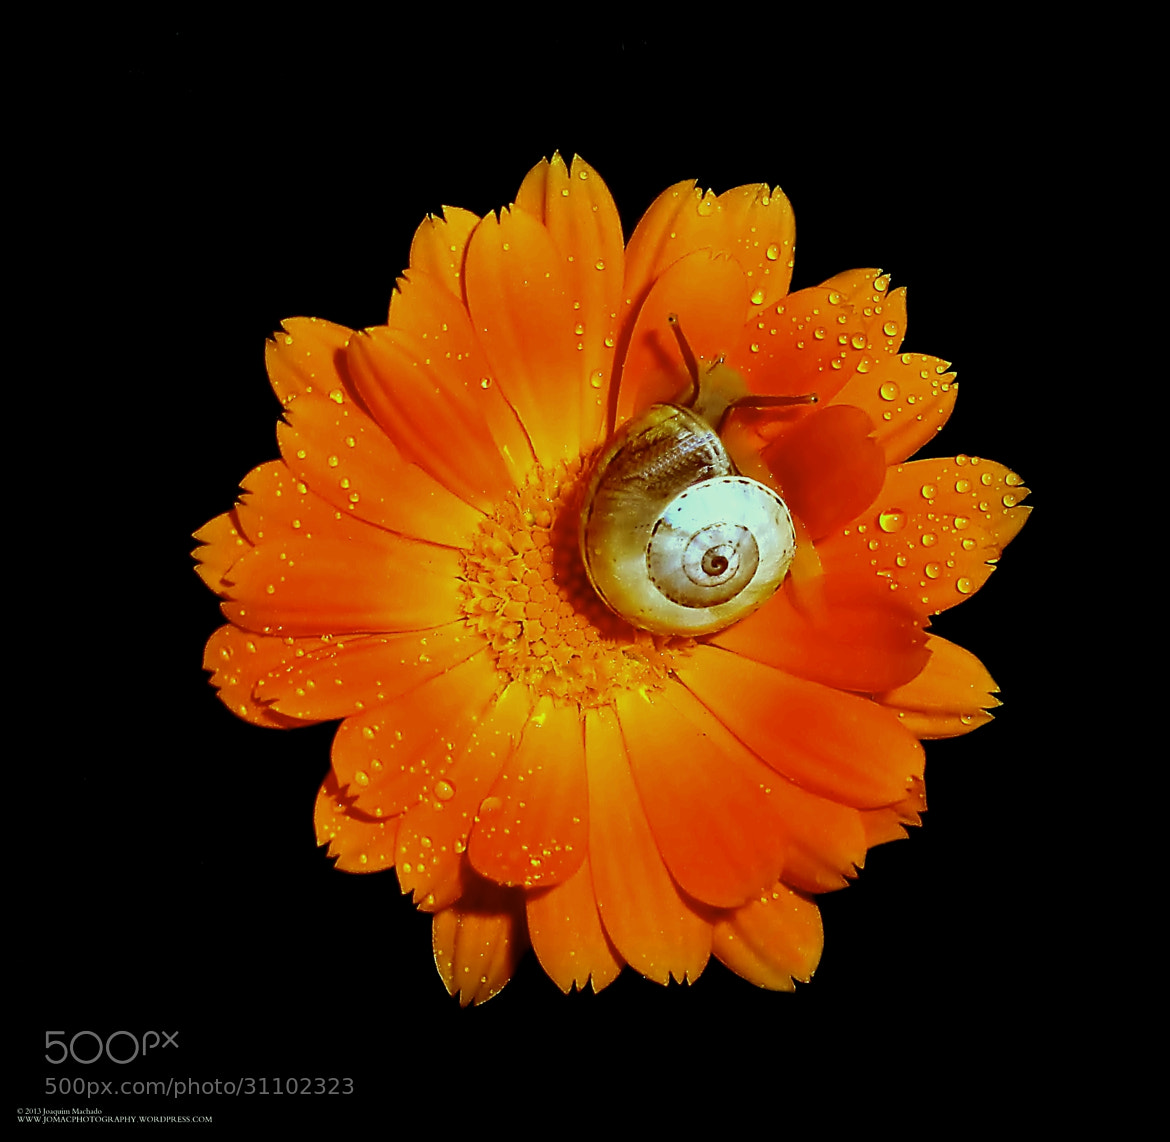 Photograph The snail in the garden by Joaquim Machado on 500px